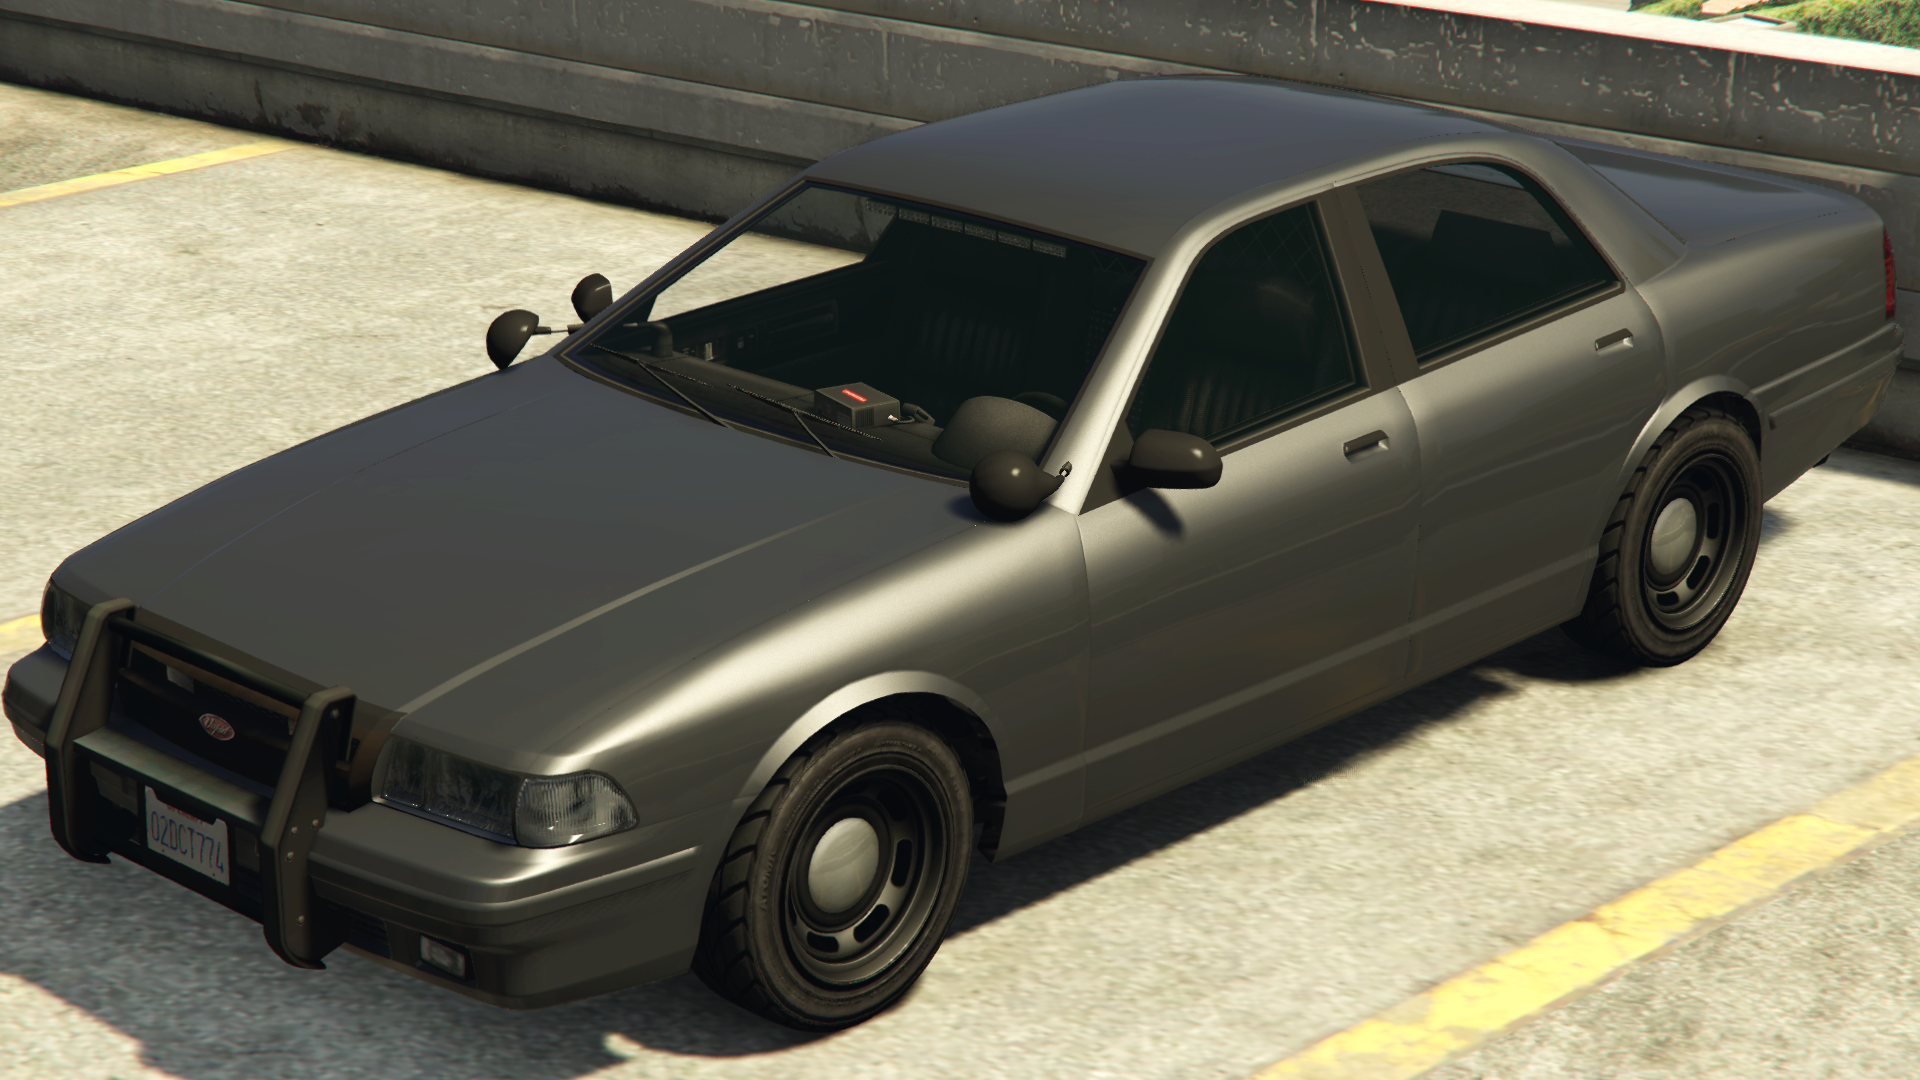 Unmarked Cruiser Gta Wiki Fandom Powered By Wikia